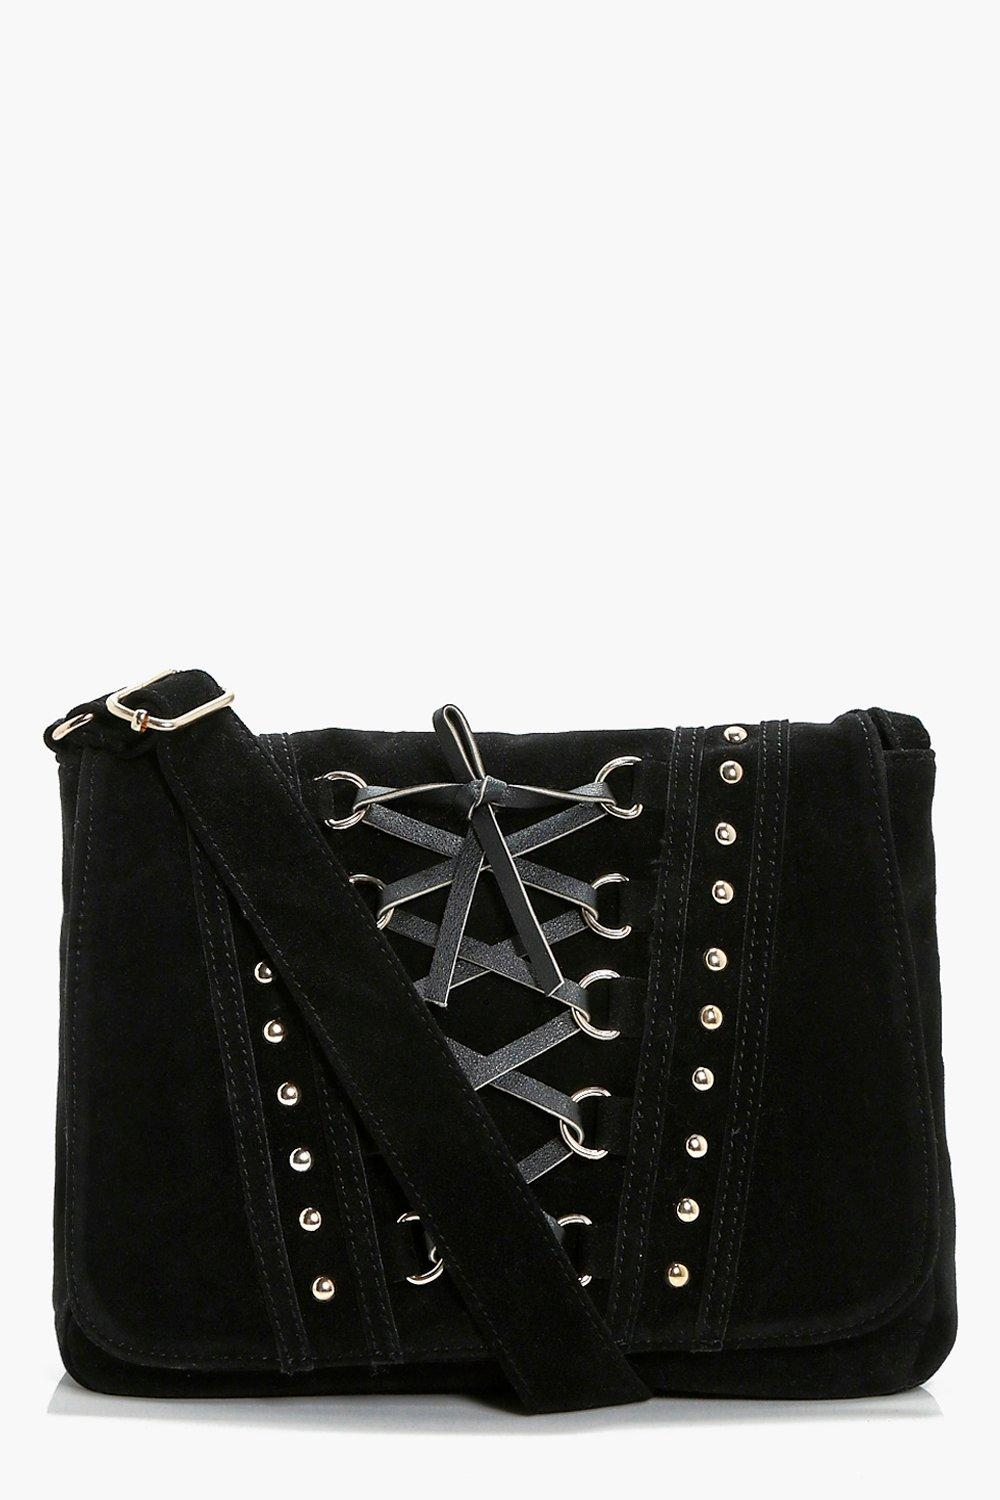 Corset And Stud Cross Body Bag - black - Lucy Cors